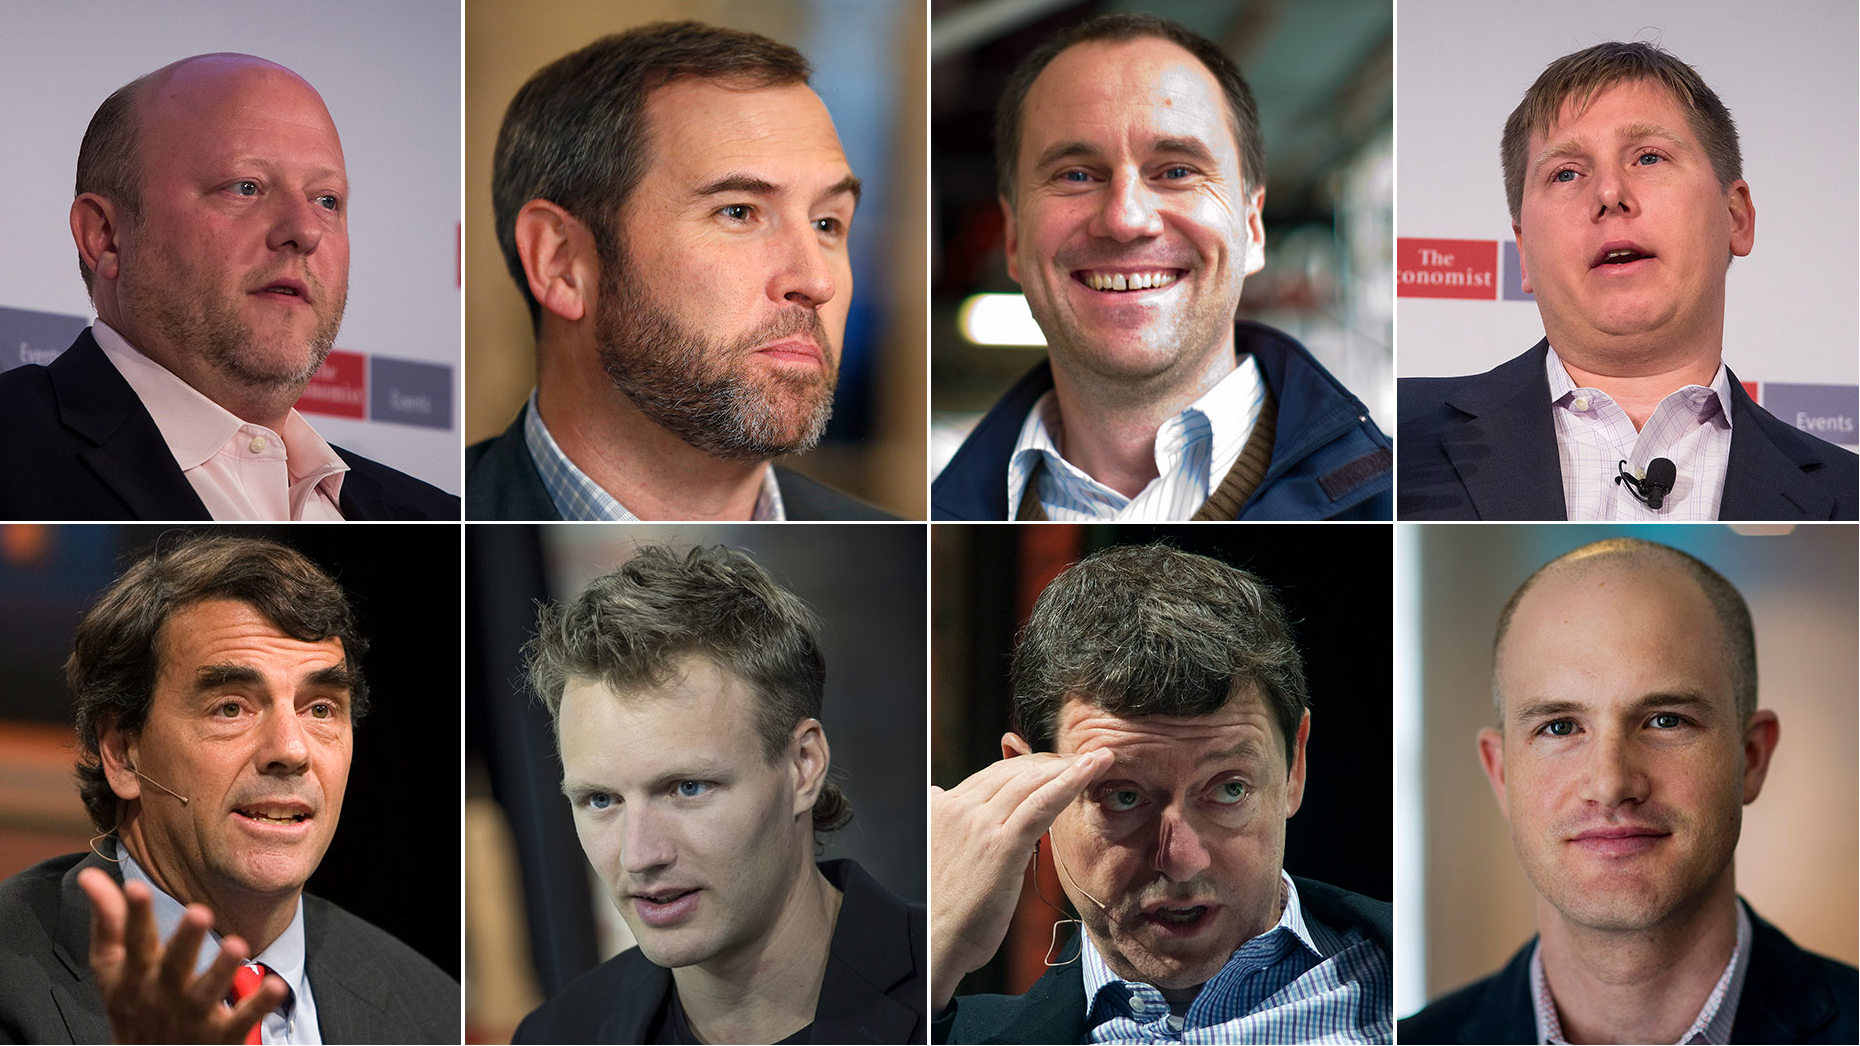 Caption: Clockwise from top left: Jeremy Allaire, Brad Garlinghouse, Albert Wenger, Barry Silbert, Brian Armstrong, Fred Wilson,  Olaf Carson-Wee, Tim Draper